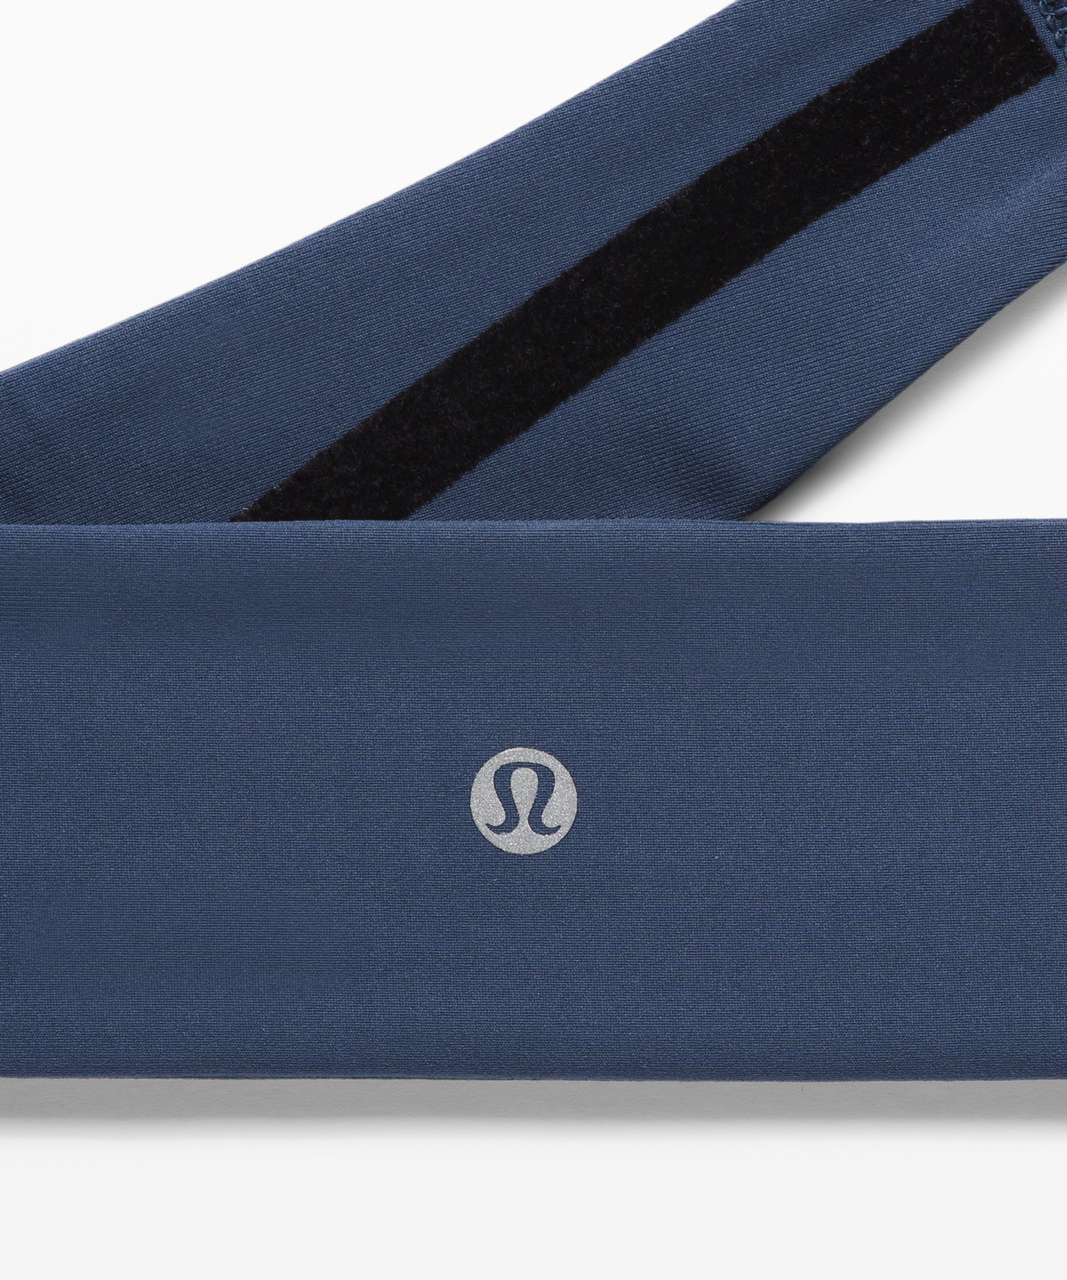 Lululemon Fly Away Tamer Headband II *Luxtreme - Iron Blue